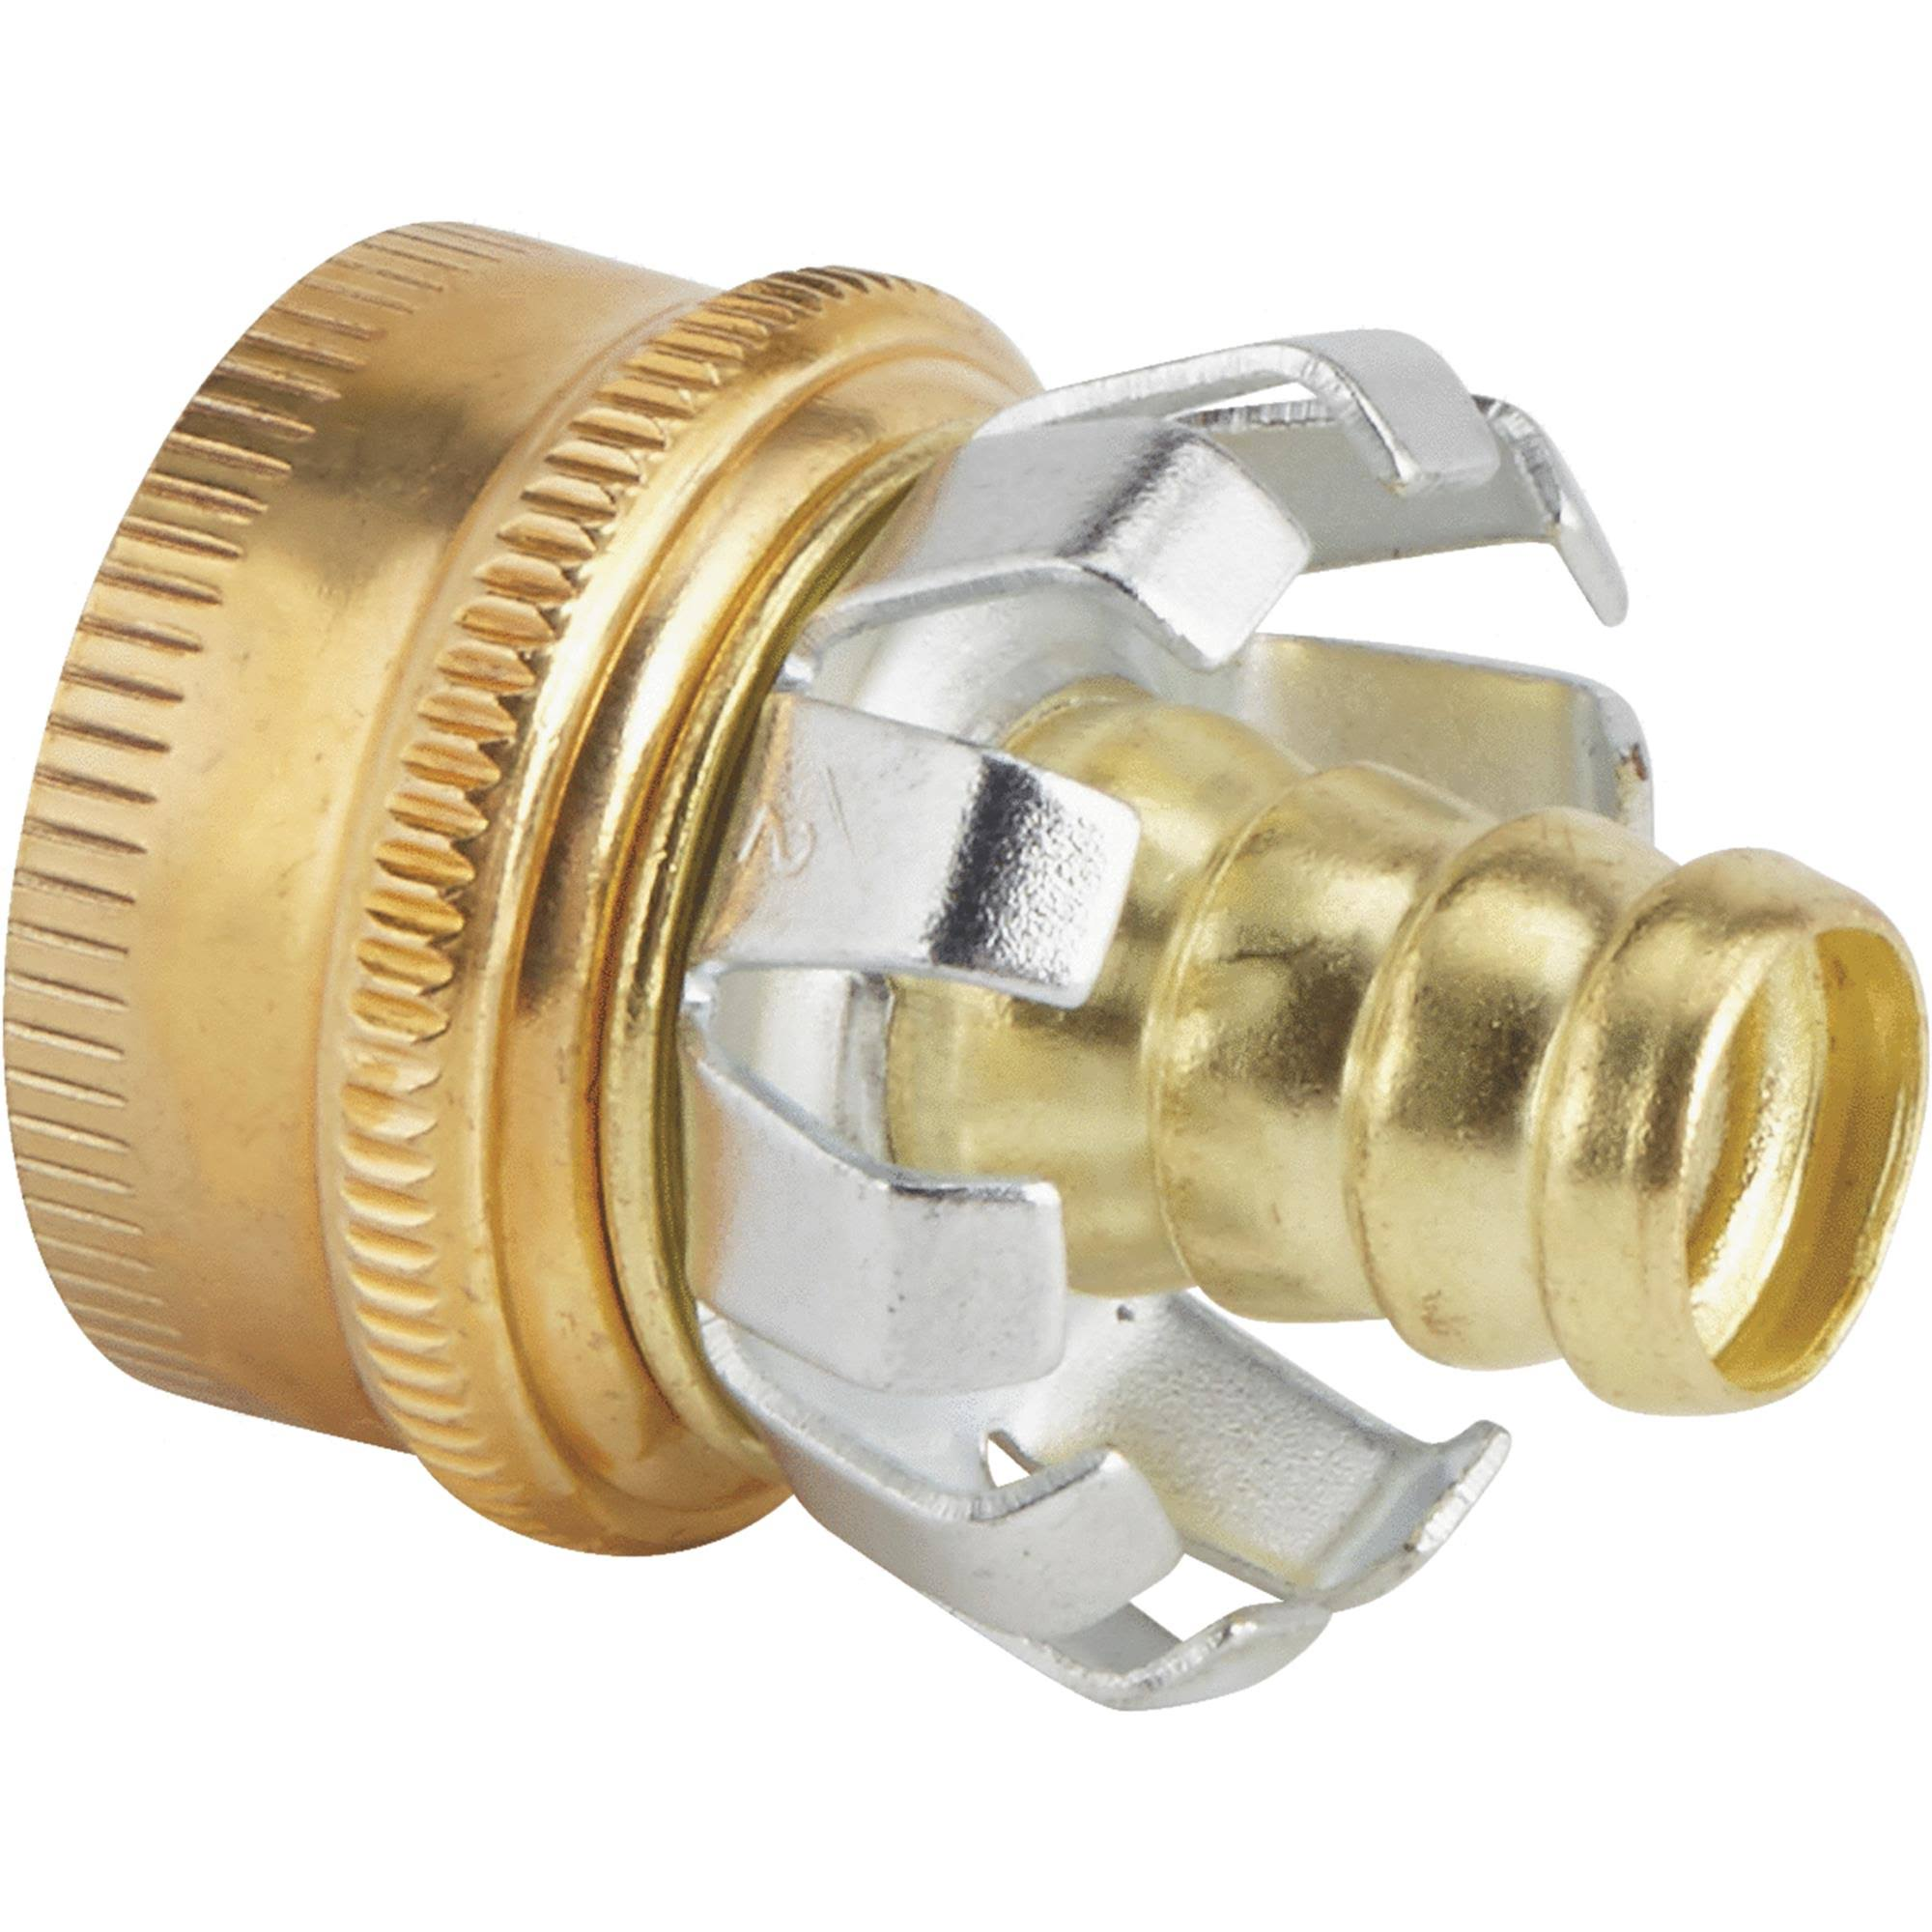 Do it Best Brass Hose End Coupler And Mender